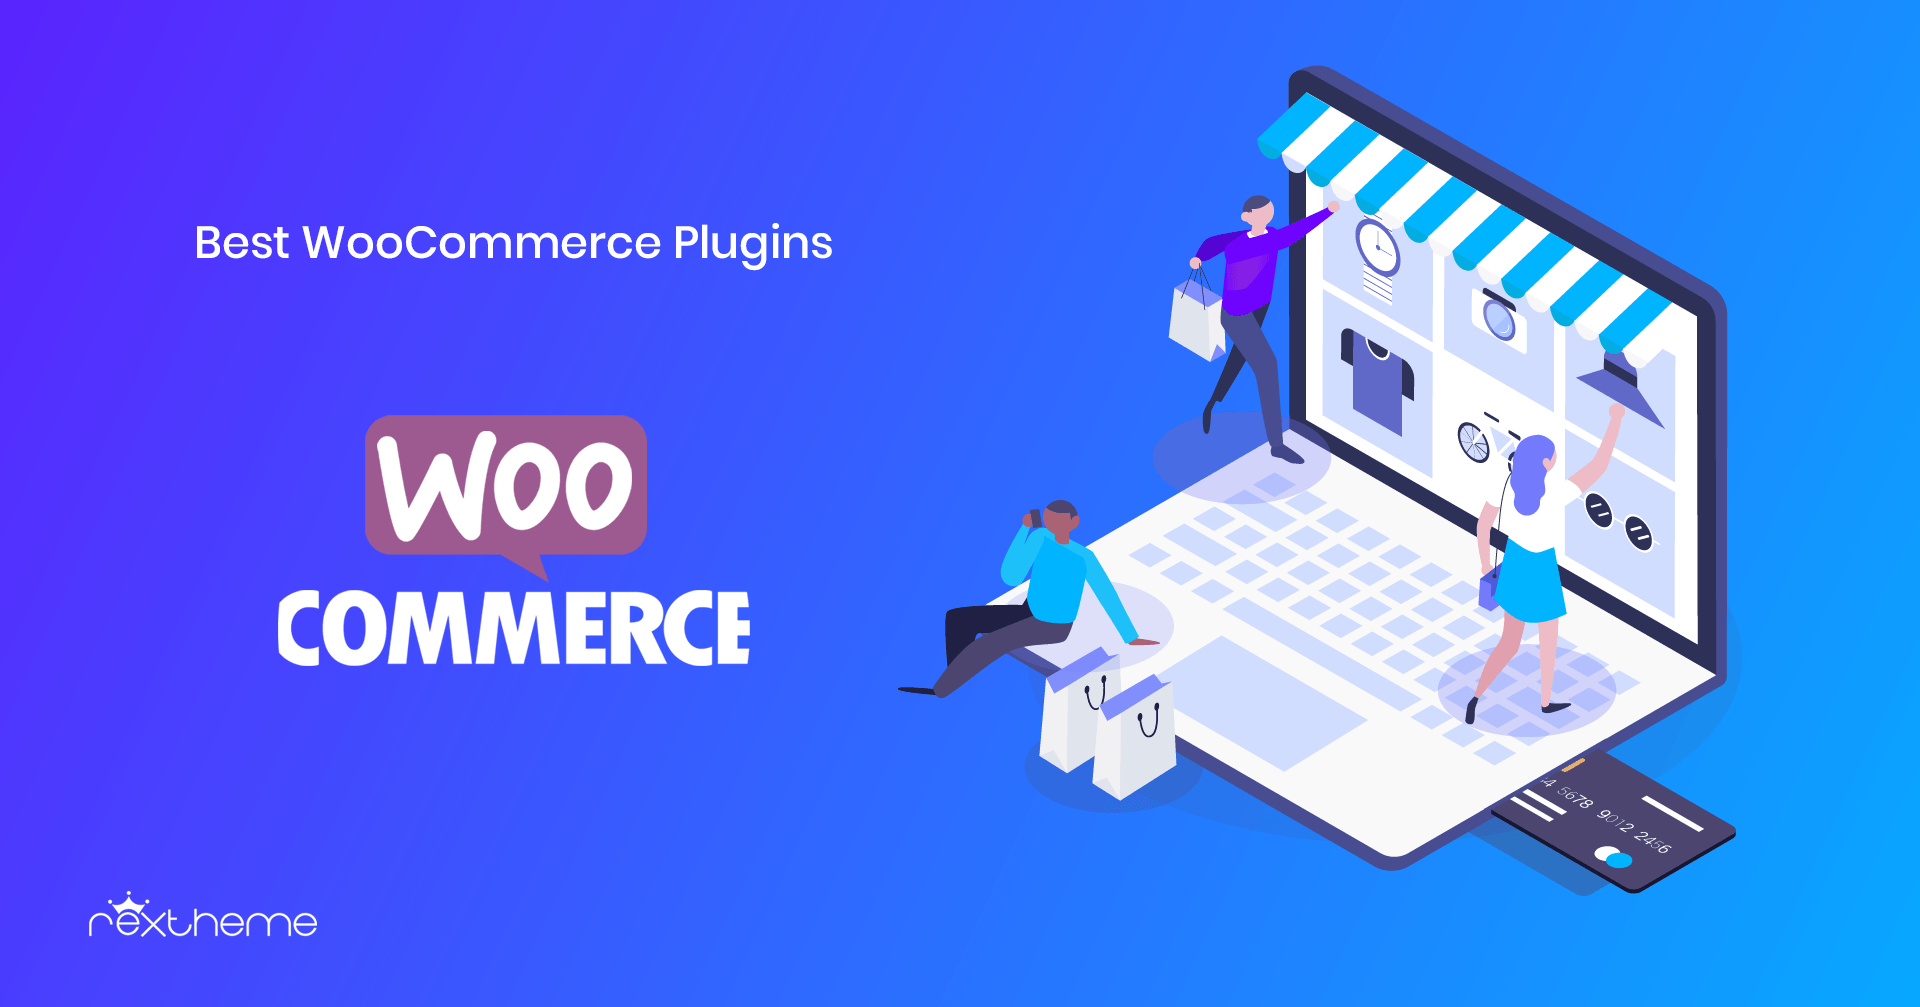 10 Best WooCommerce Plugins That Can Boost Your Shop [2019]